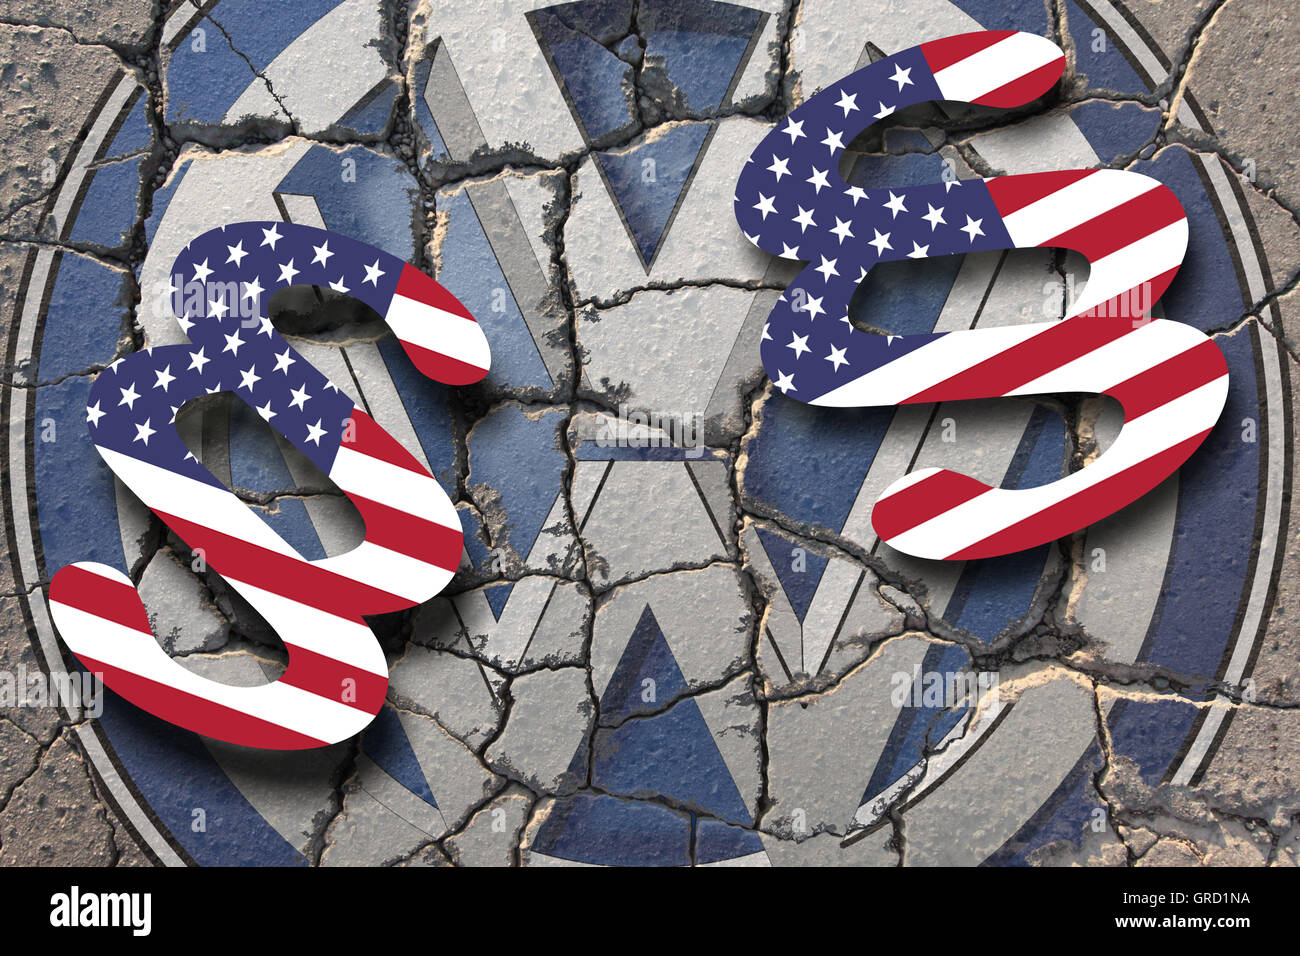 Crisis At Volkswagen Vw Sign On Eroding Road With Paragraph And Stars And Stripes - Stock Image